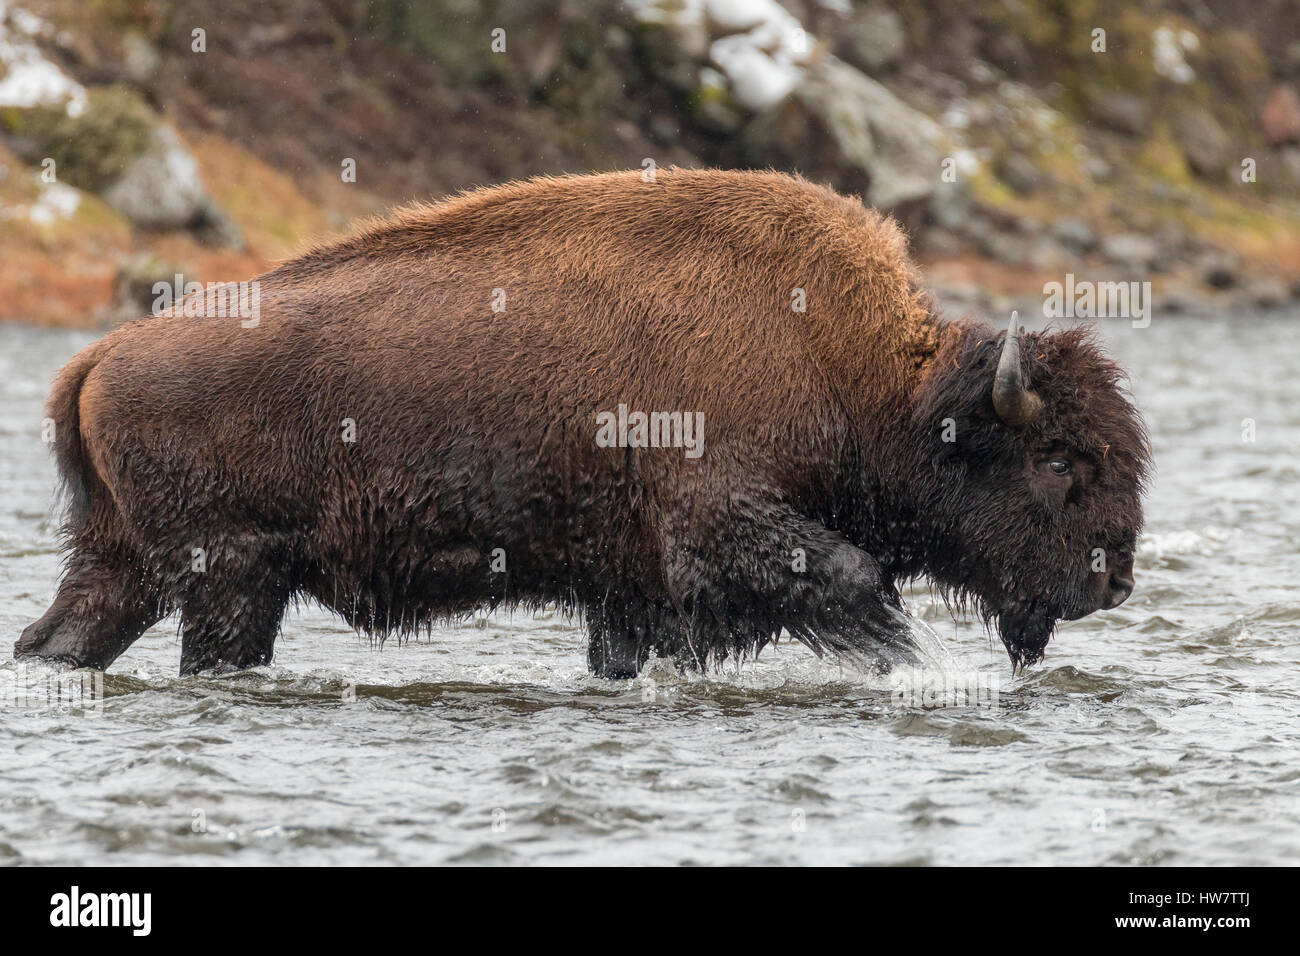 Bull bison fording the Madison River in Yellowstone National Park. - Stock Image